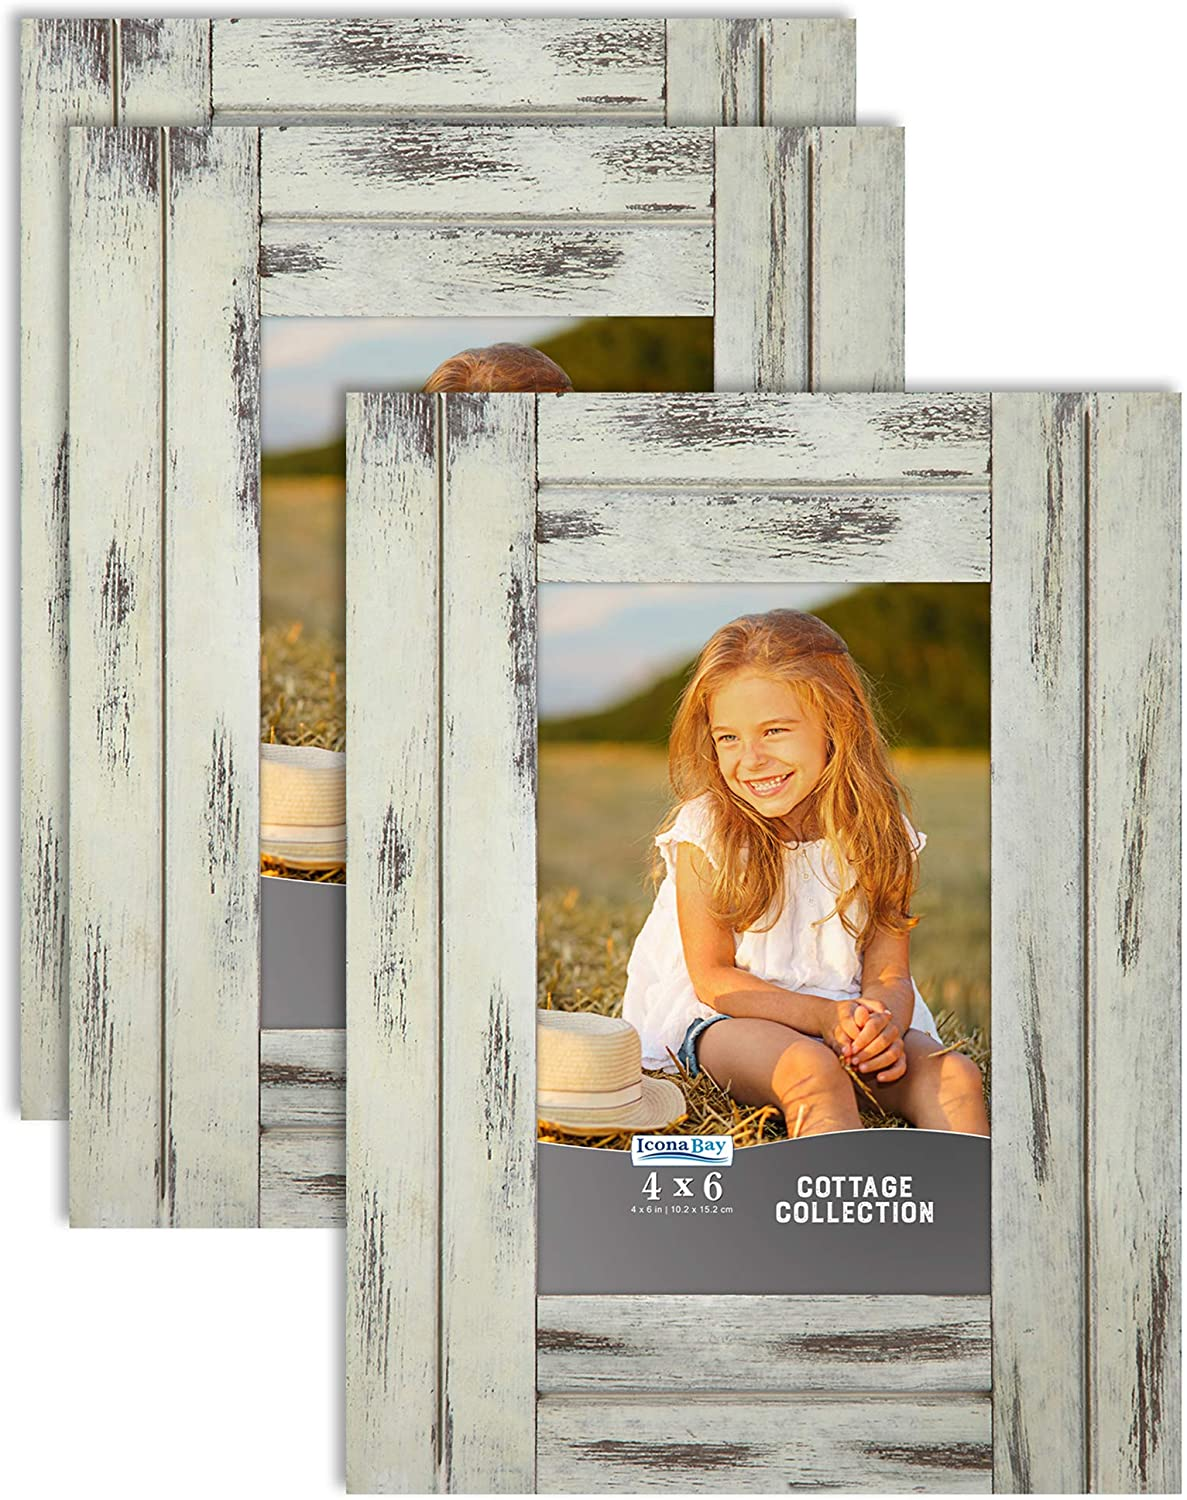 Icona Bay 4x6 (10x15 cm) Picture Frames (Creamery White, 3 Pack), Rustic Picture Frame Set, Natural Real Wood Frames, Cottage Collection